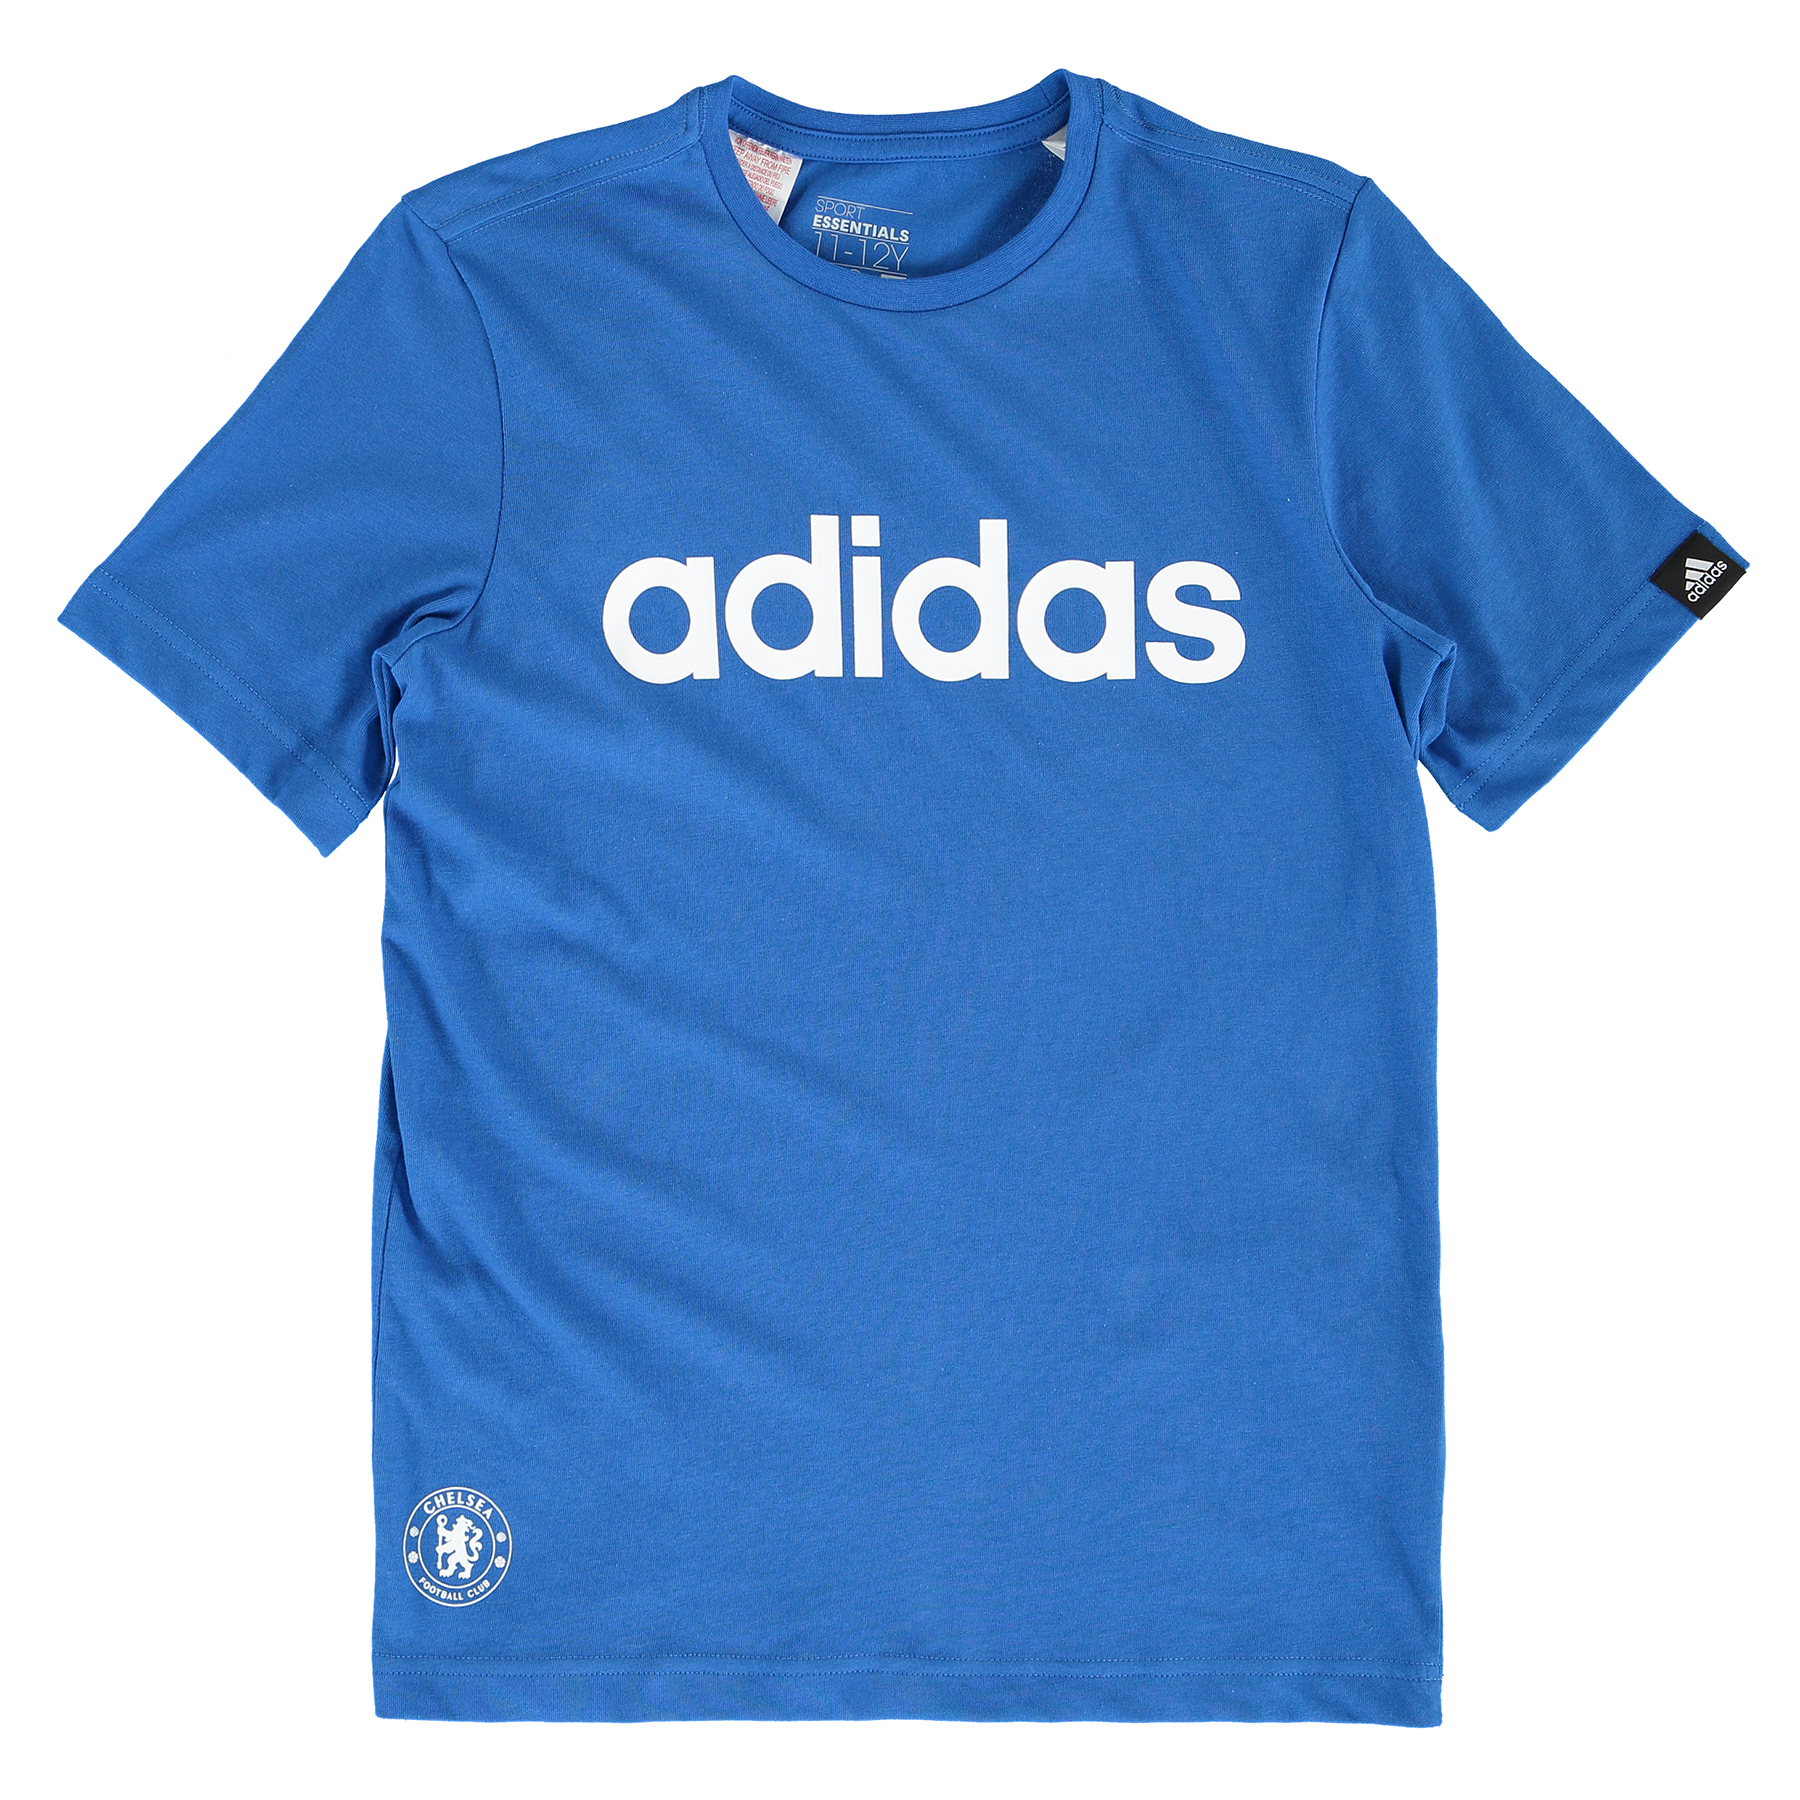 Chelsea Essentials T-Shirt - Boys - Blue